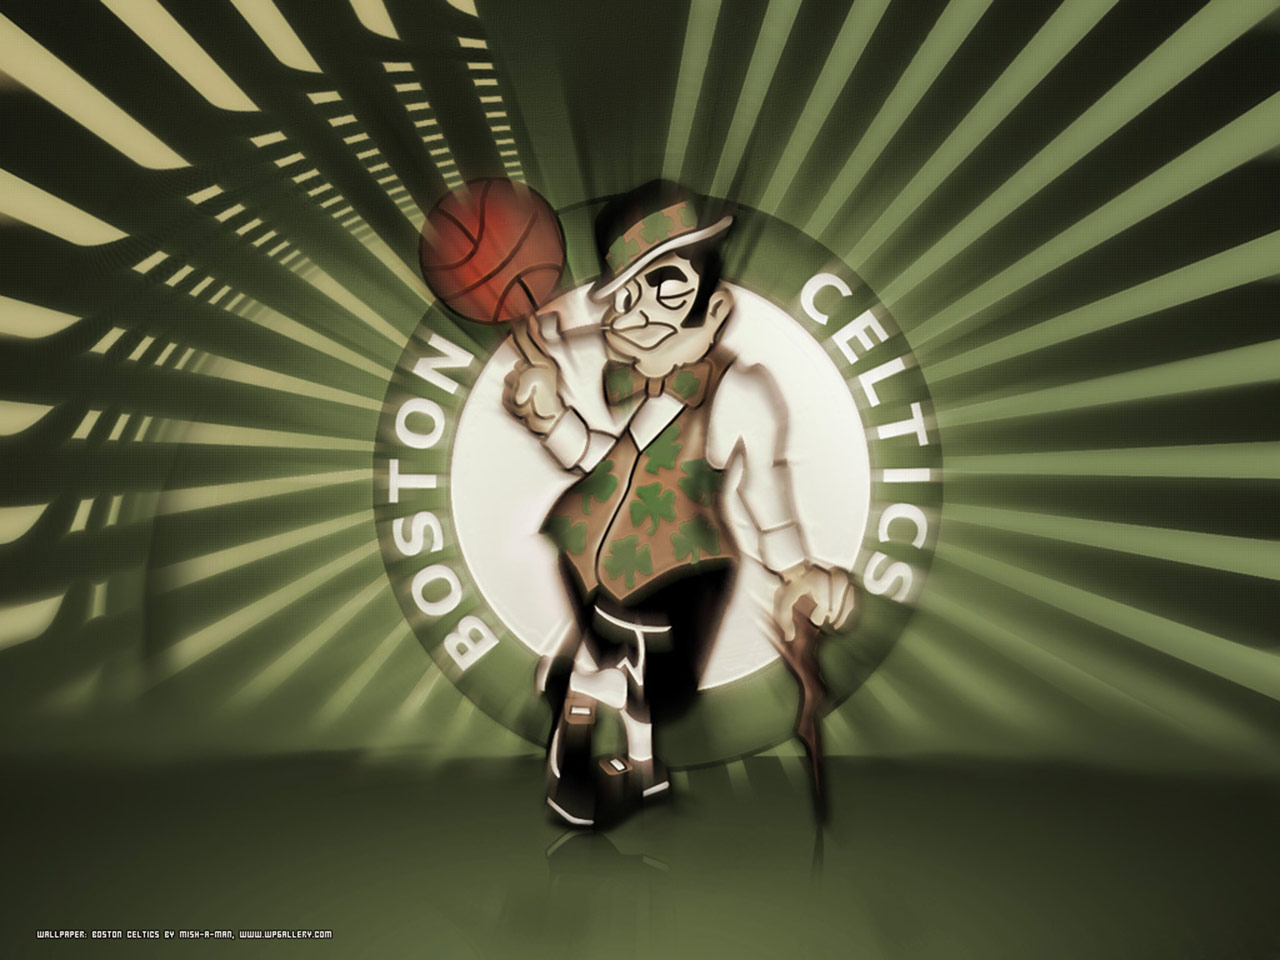 Boston Celtics Wallpapers HD Wallpapers Early 1280x960